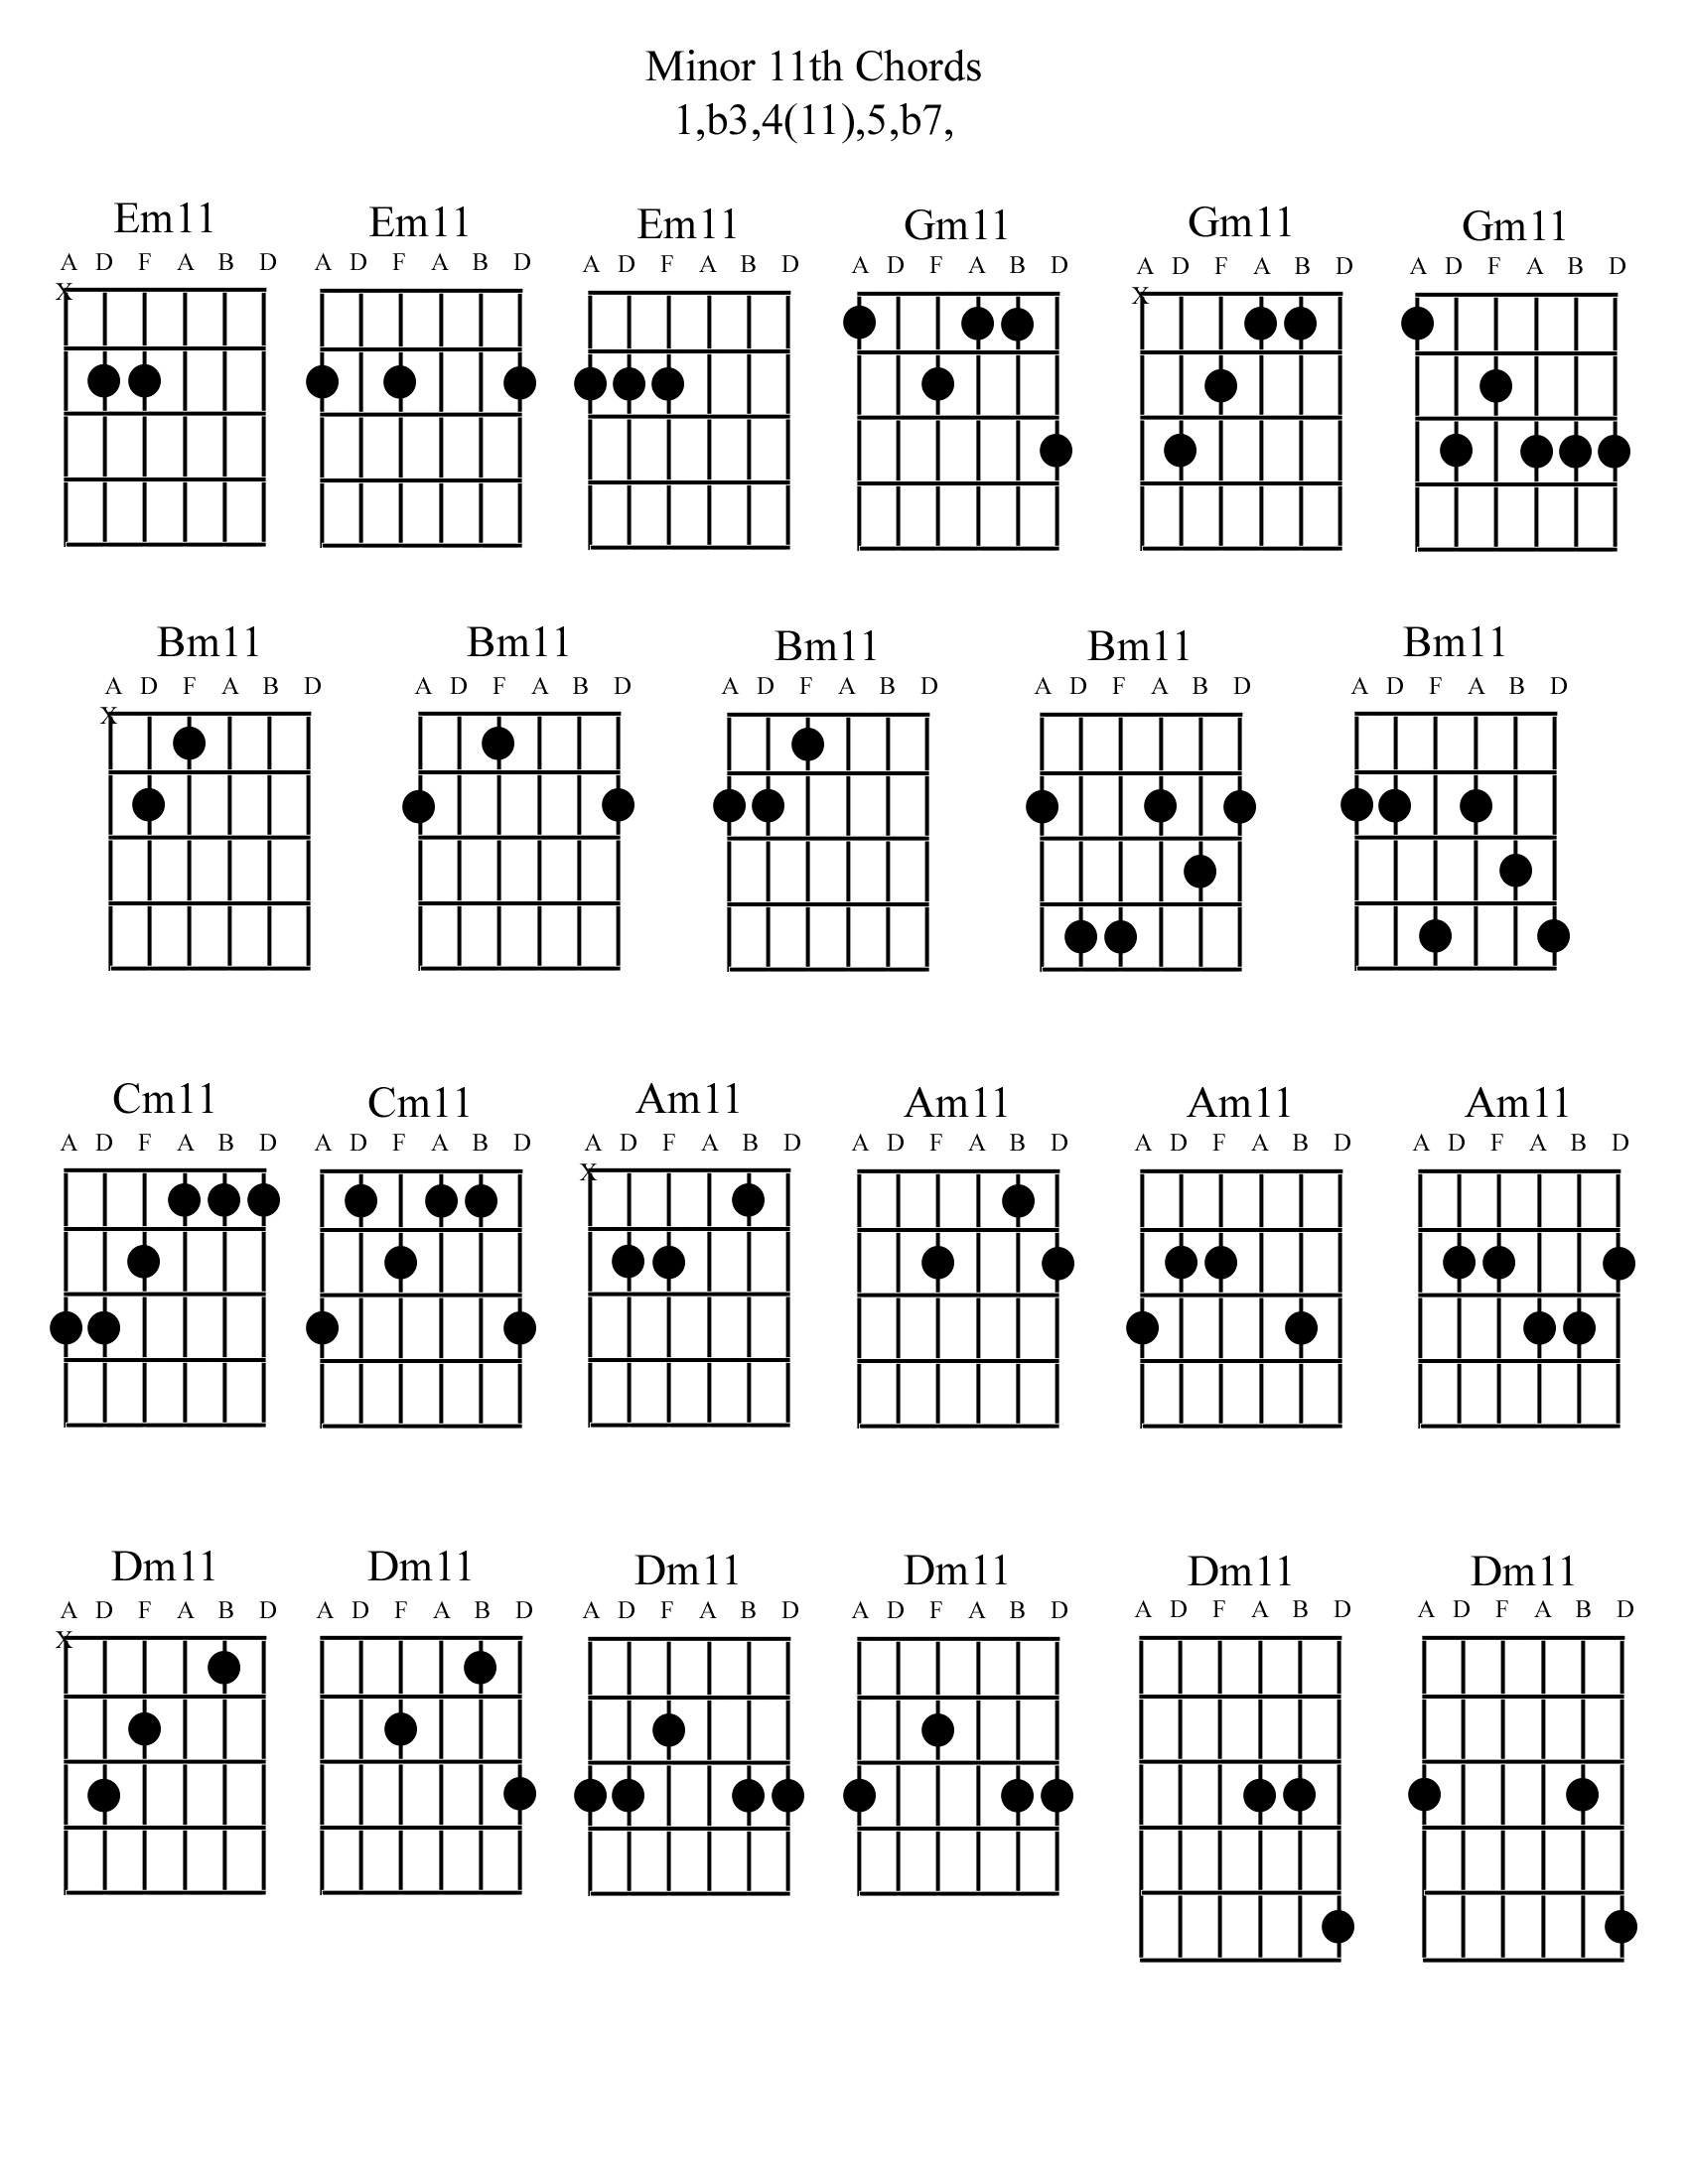 Minor 11th Chords